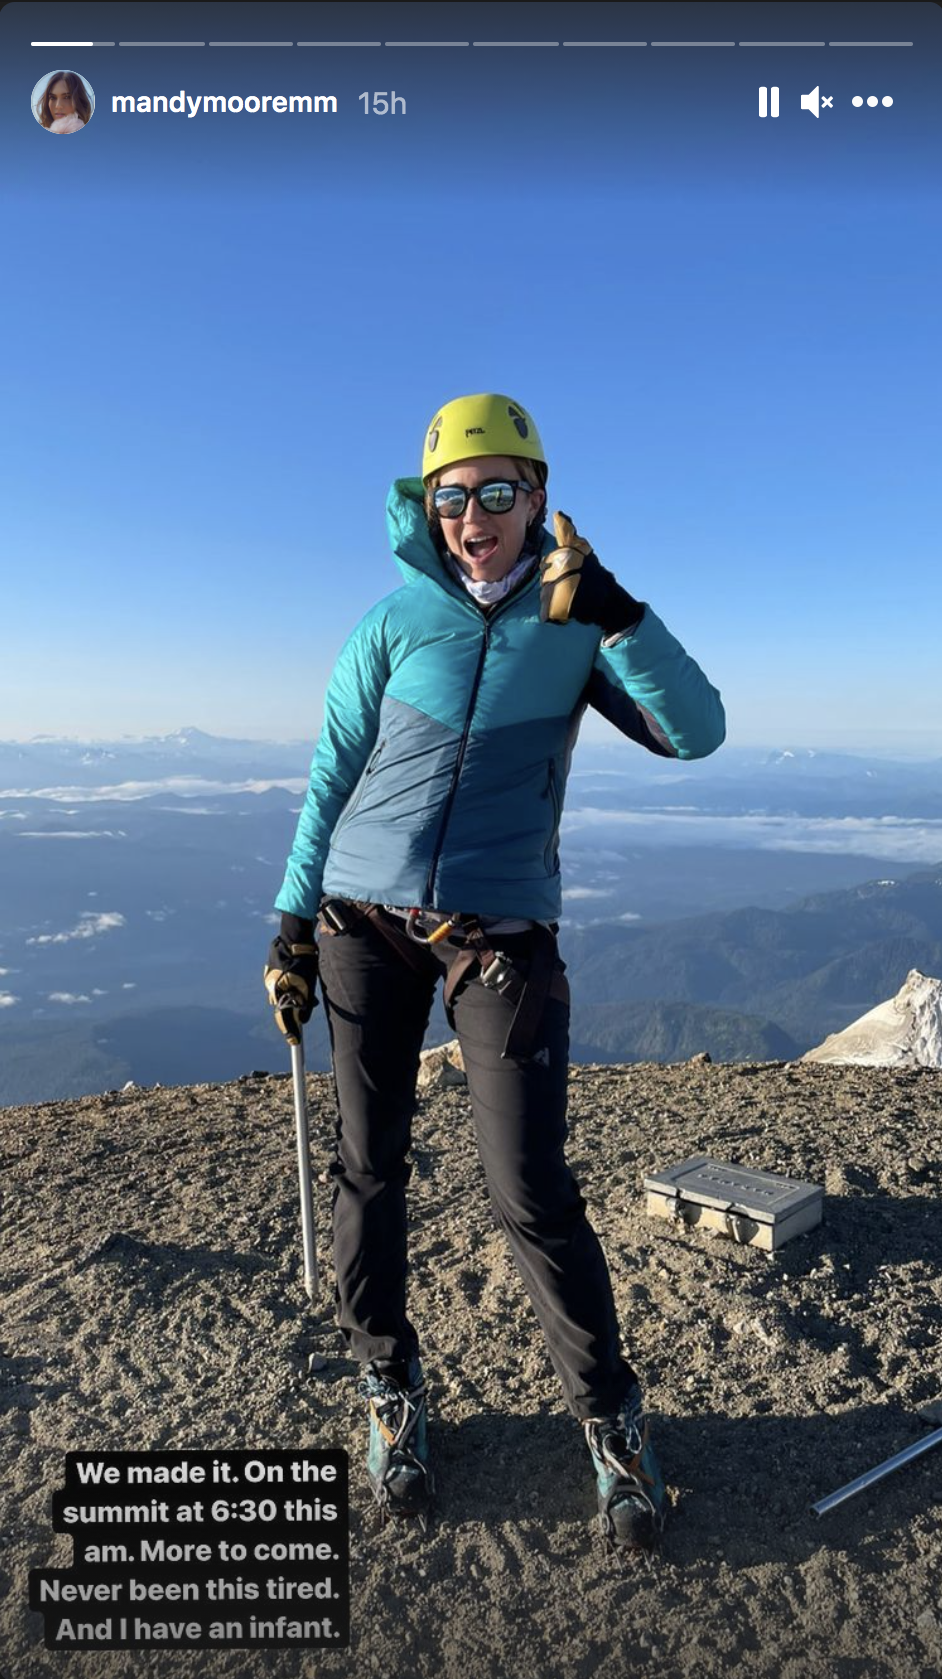 Mandy Moore gives a thumbs up from the summit of Mount Baker